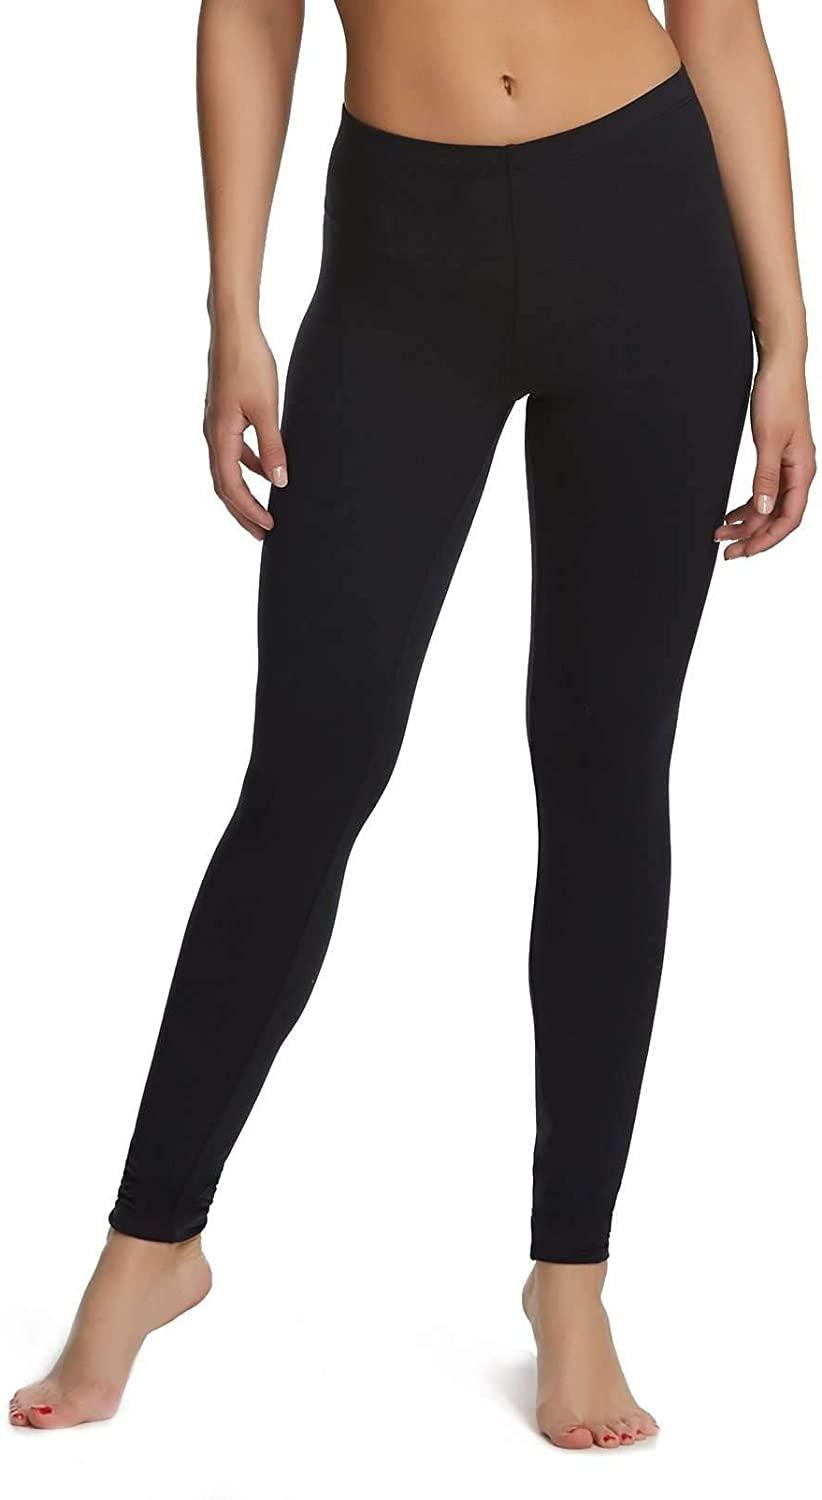 """<h3>Felina Super Soft Lightweight Legging<br></h3><br>We're diehard review-watchers, and when we saw this lightweight pair's rating — 4.6 out of 5 stars and over 2,300 reviews — we immediately began to comb them. """"These leggings are thin, but not see-through. They are form-fitting but breathable,"""" explained one fan. """"They are lightweight, but thick enough not to easily run or tear,"""" attested another. Sounds like they check every box. At about $30 for two pairs, we're sold.<br><br><br><br><strong>Felina</strong> Lightweight Legging (Set of 2), $, available at <a href=""""https://go.skimresources.com/?id=30283X879131&url="""" rel=""""nofollow noopener"""" target=""""_blank"""" data-ylk=""""slk:Amazon"""" class=""""link rapid-noclick-resp"""">Amazon</a>"""